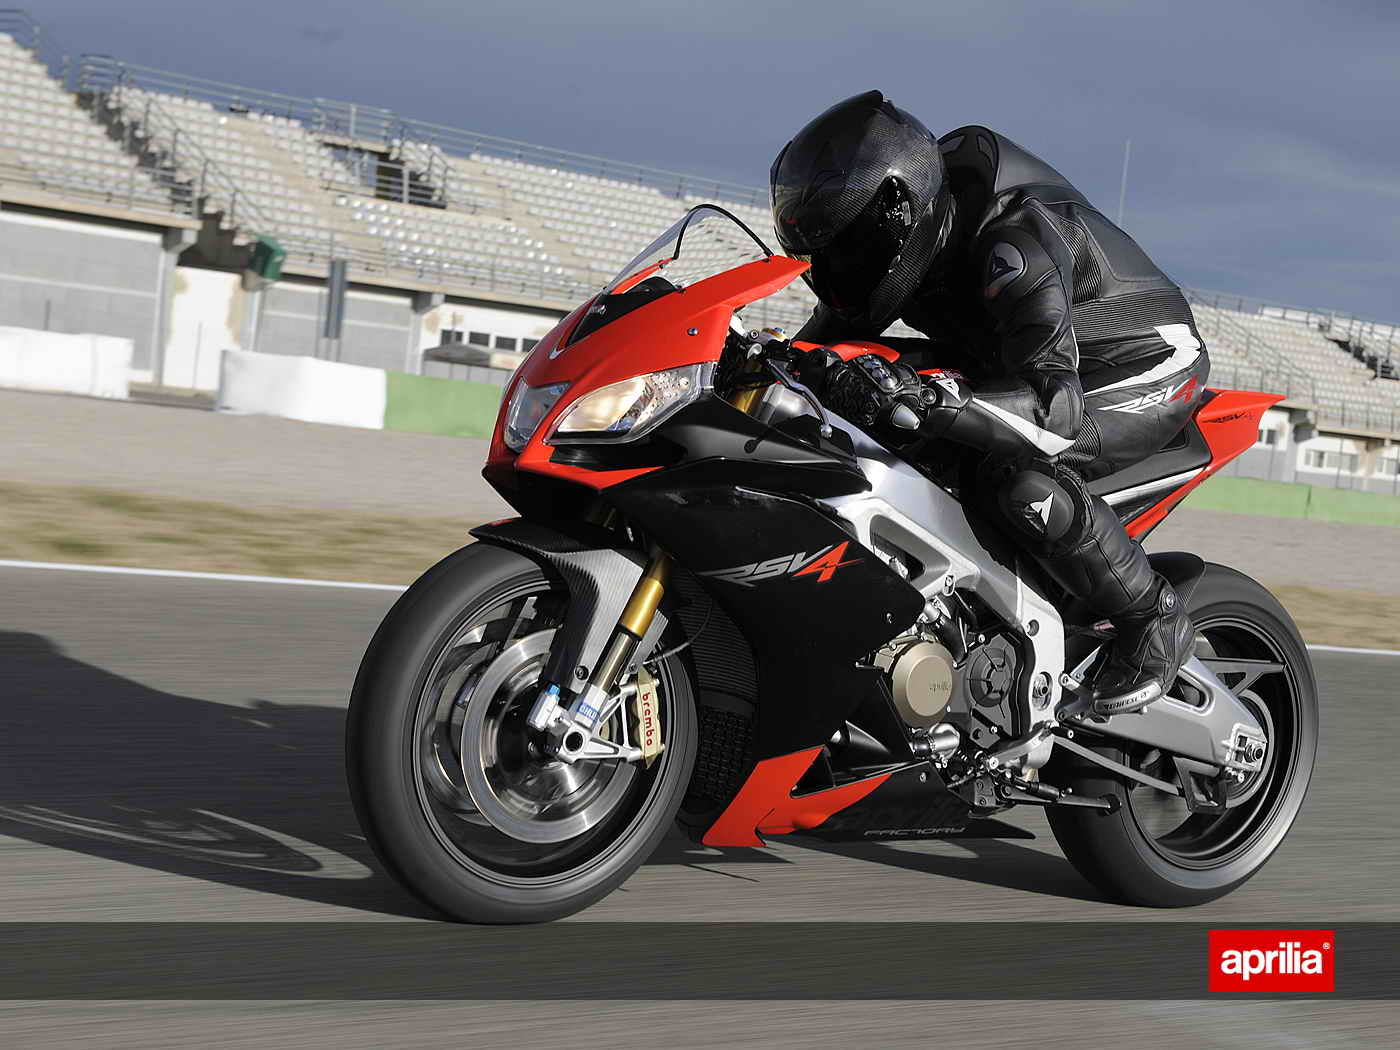 Otomotive Modification Aprilia Rsv4 R Specifications And Reviews All New Cbr 150r Victory Black Red Jepara Motorcycles